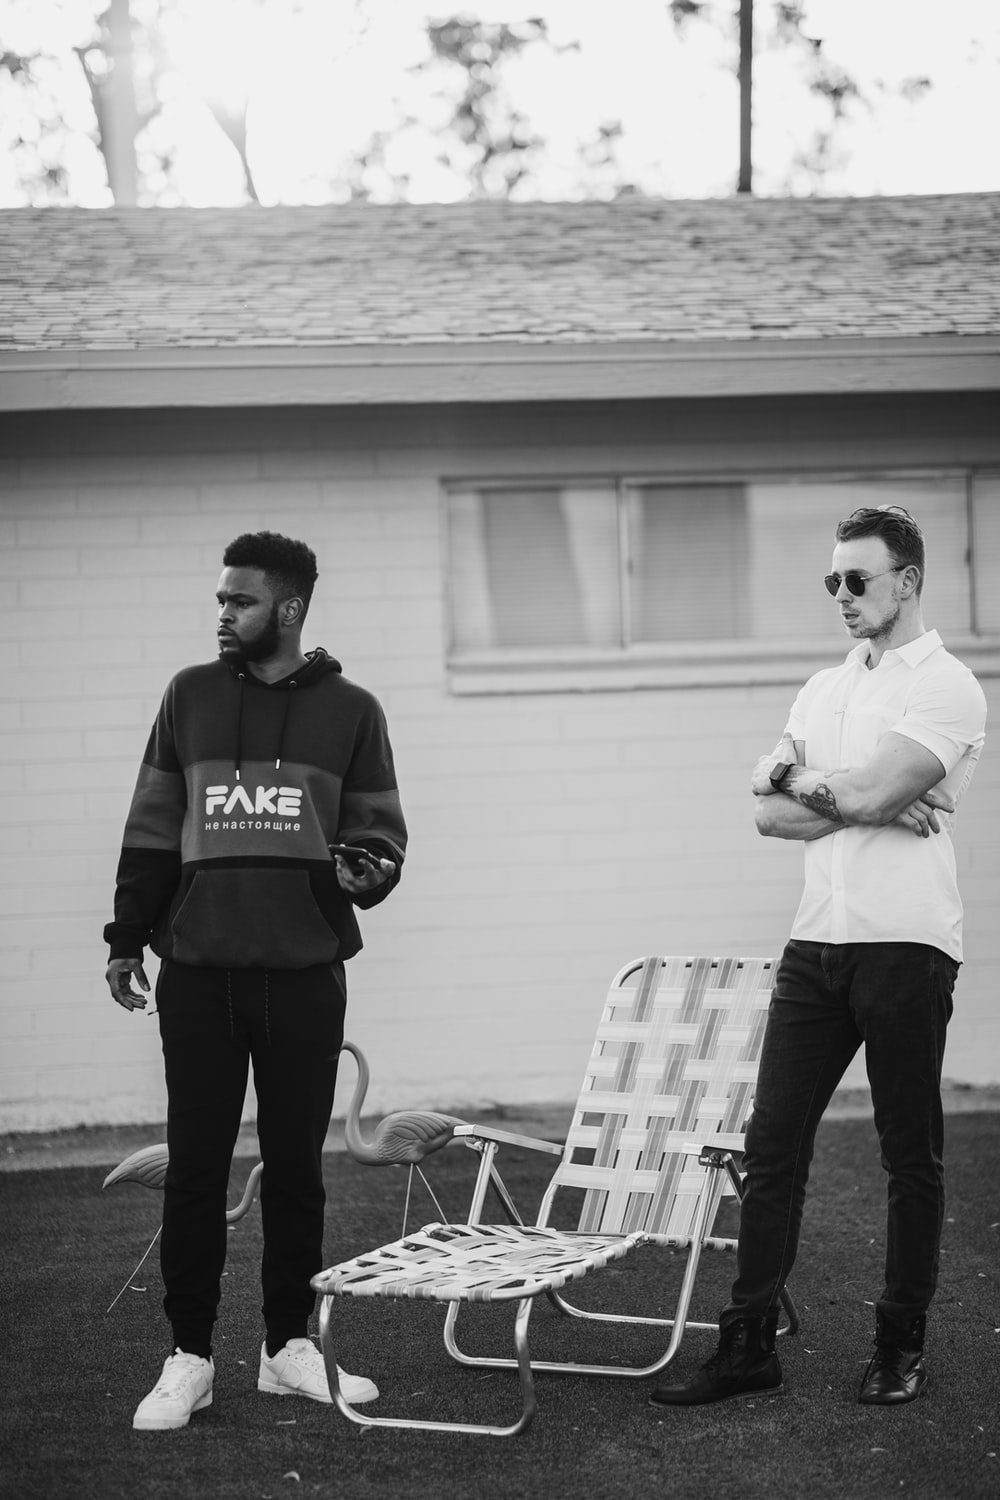 man in black and white hoodie standing beside man in white long sleeve shirt